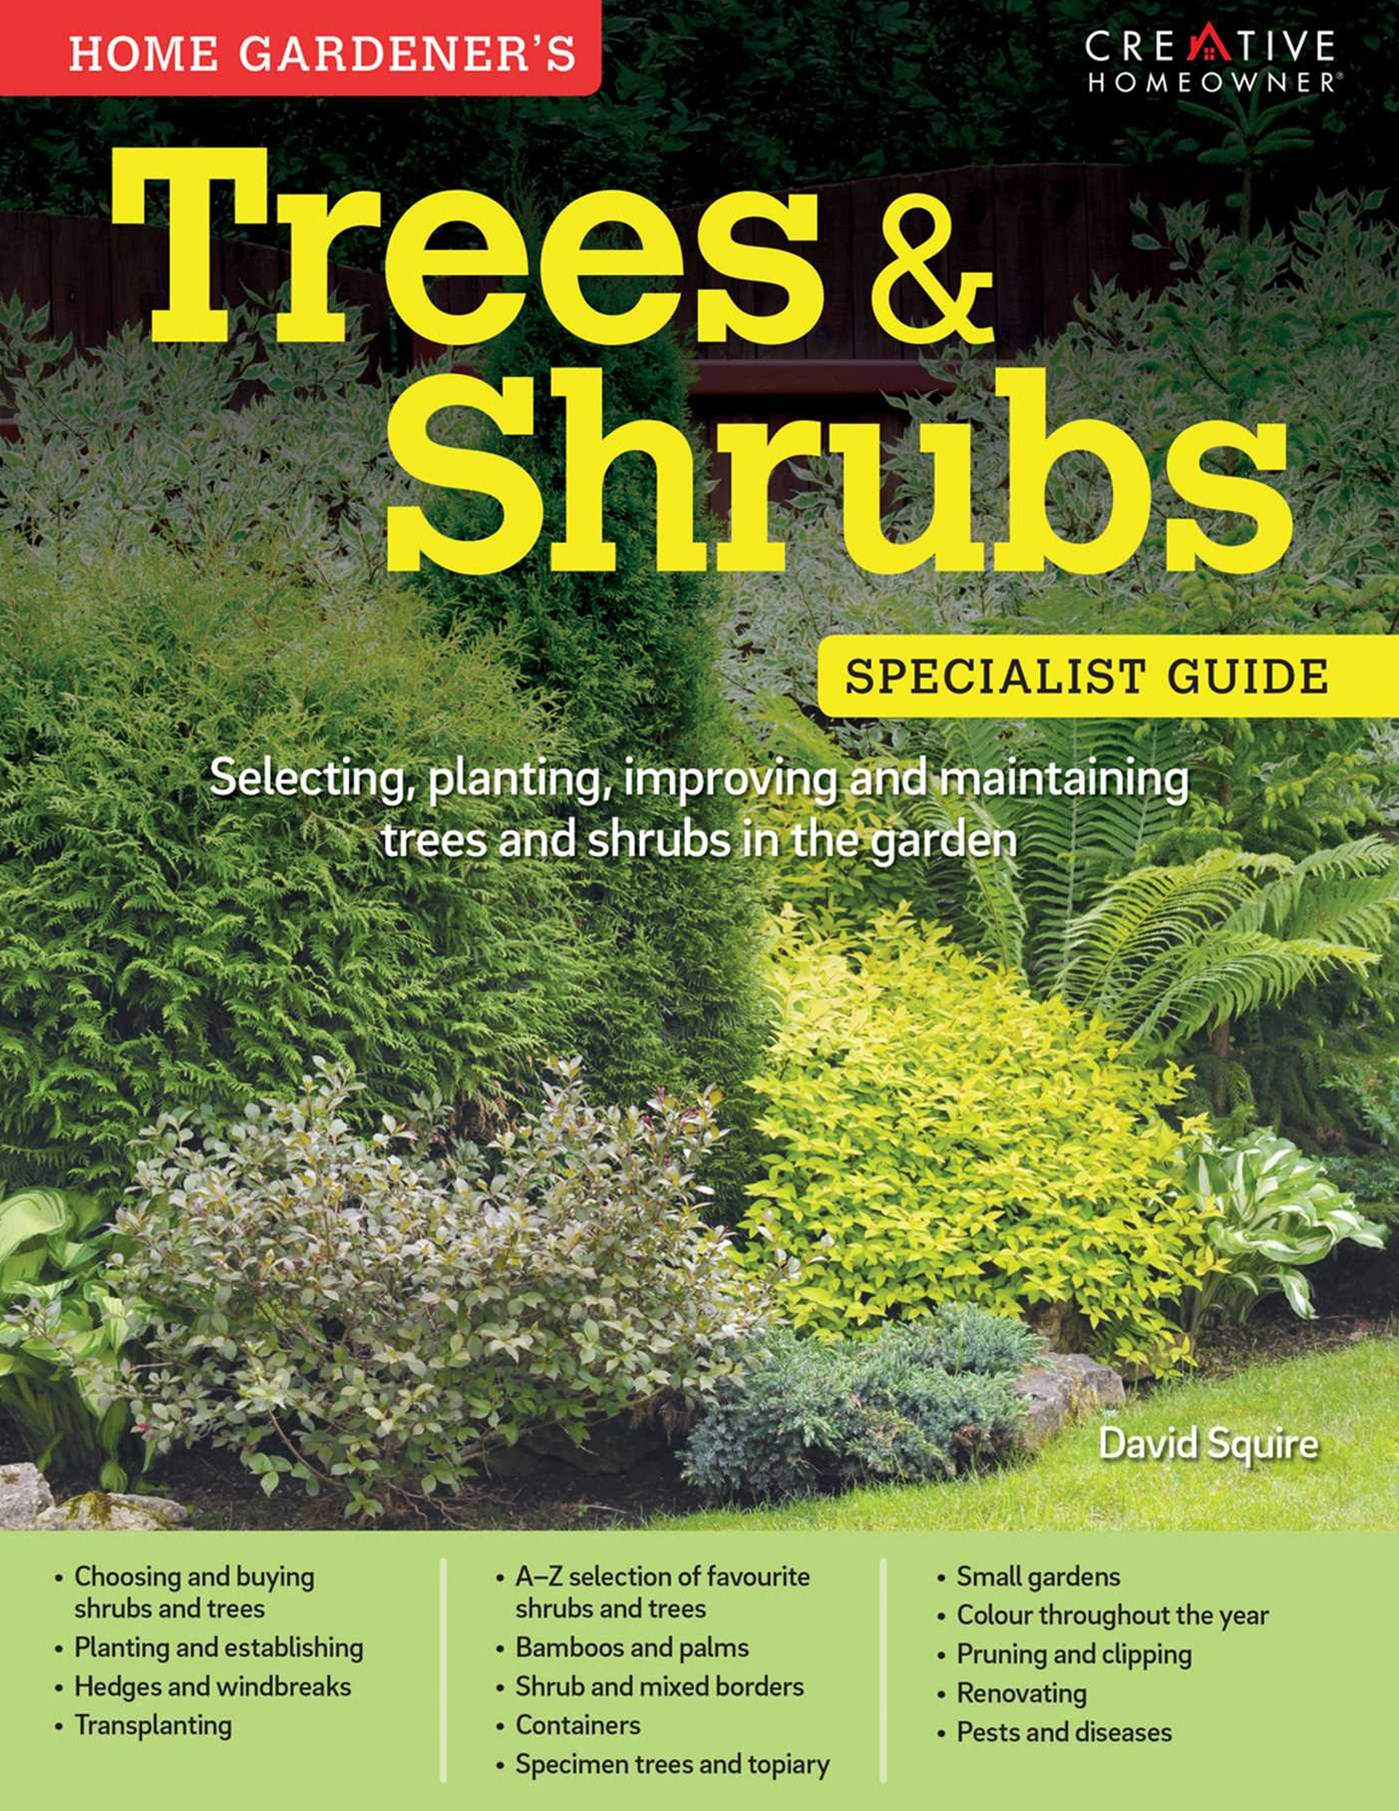 Home Gardeners Trees and Shrubs